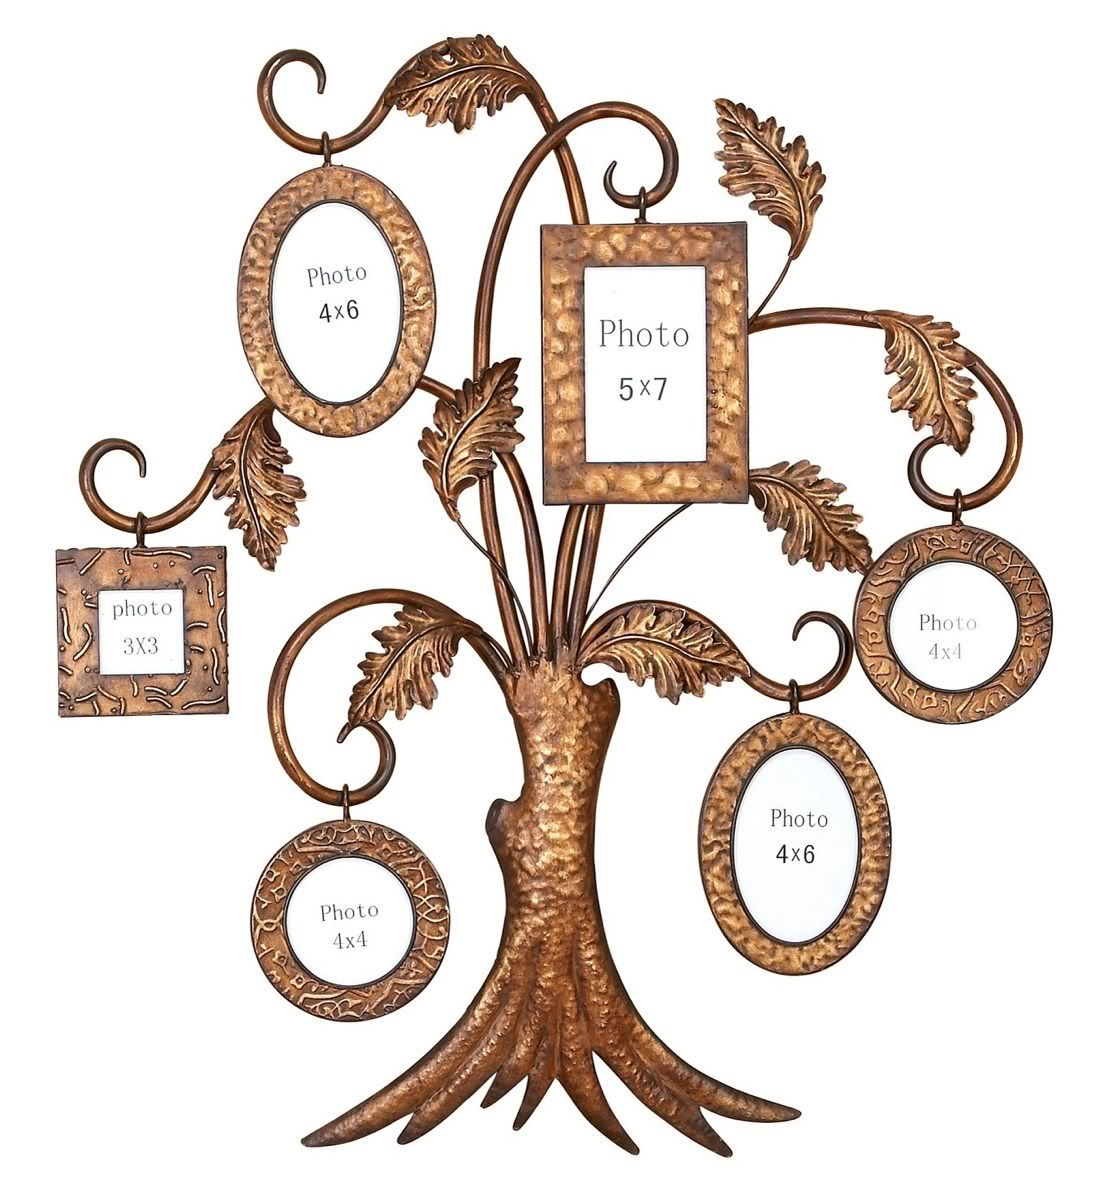 Family Frames Wall Decor metal family tree frame photo display wall hanging copper color